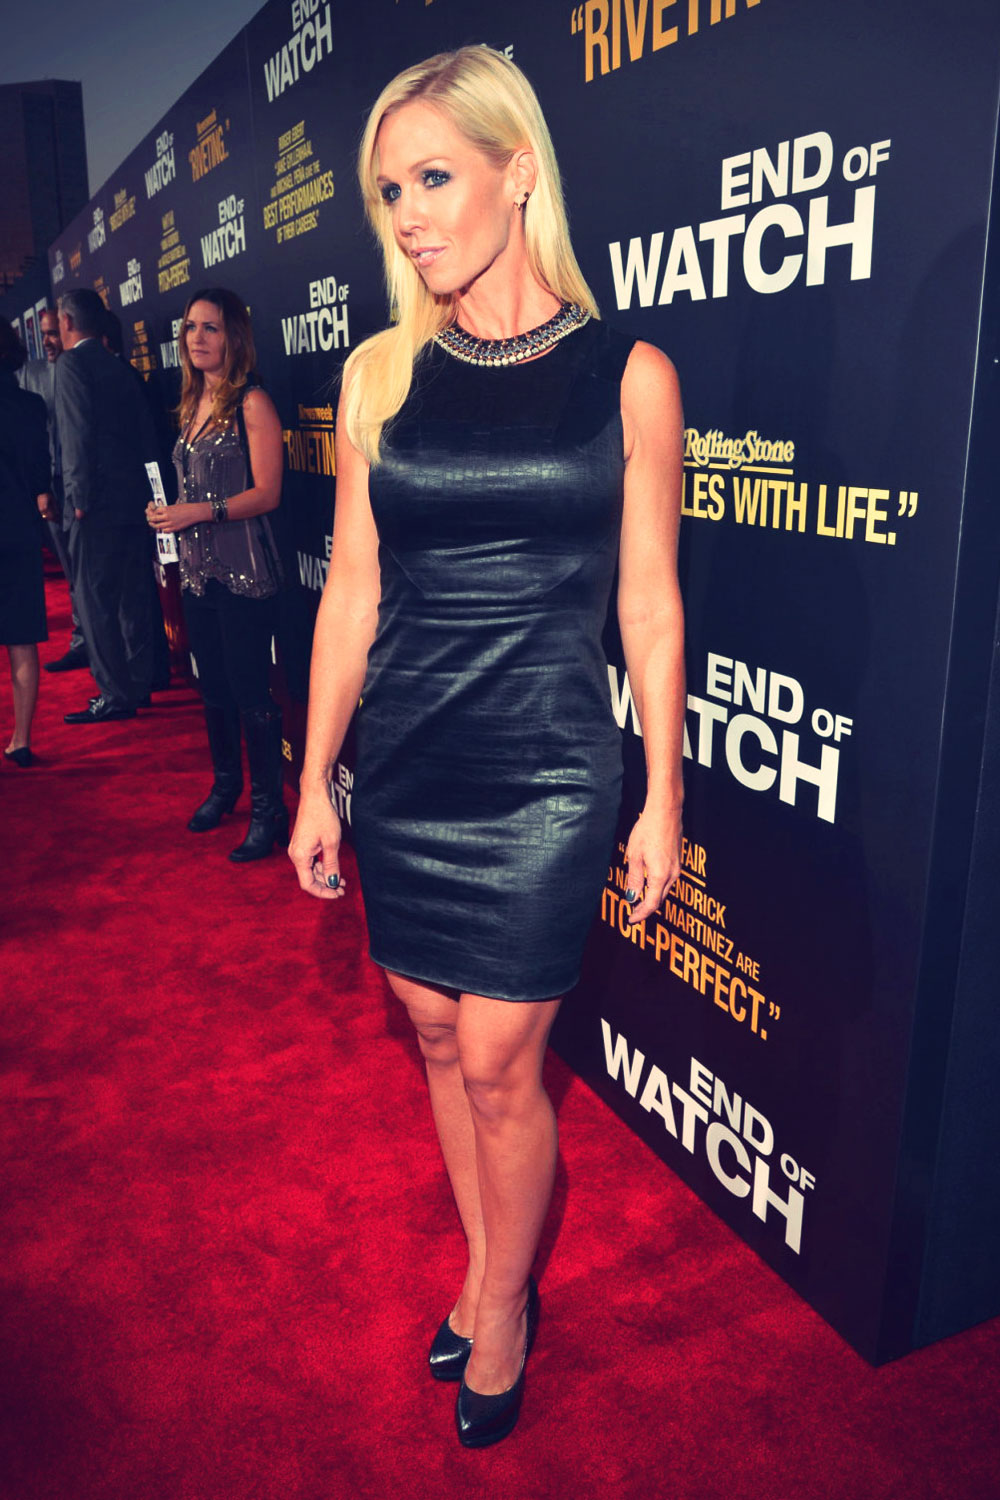 Jennie Garth at End of Watch premiere